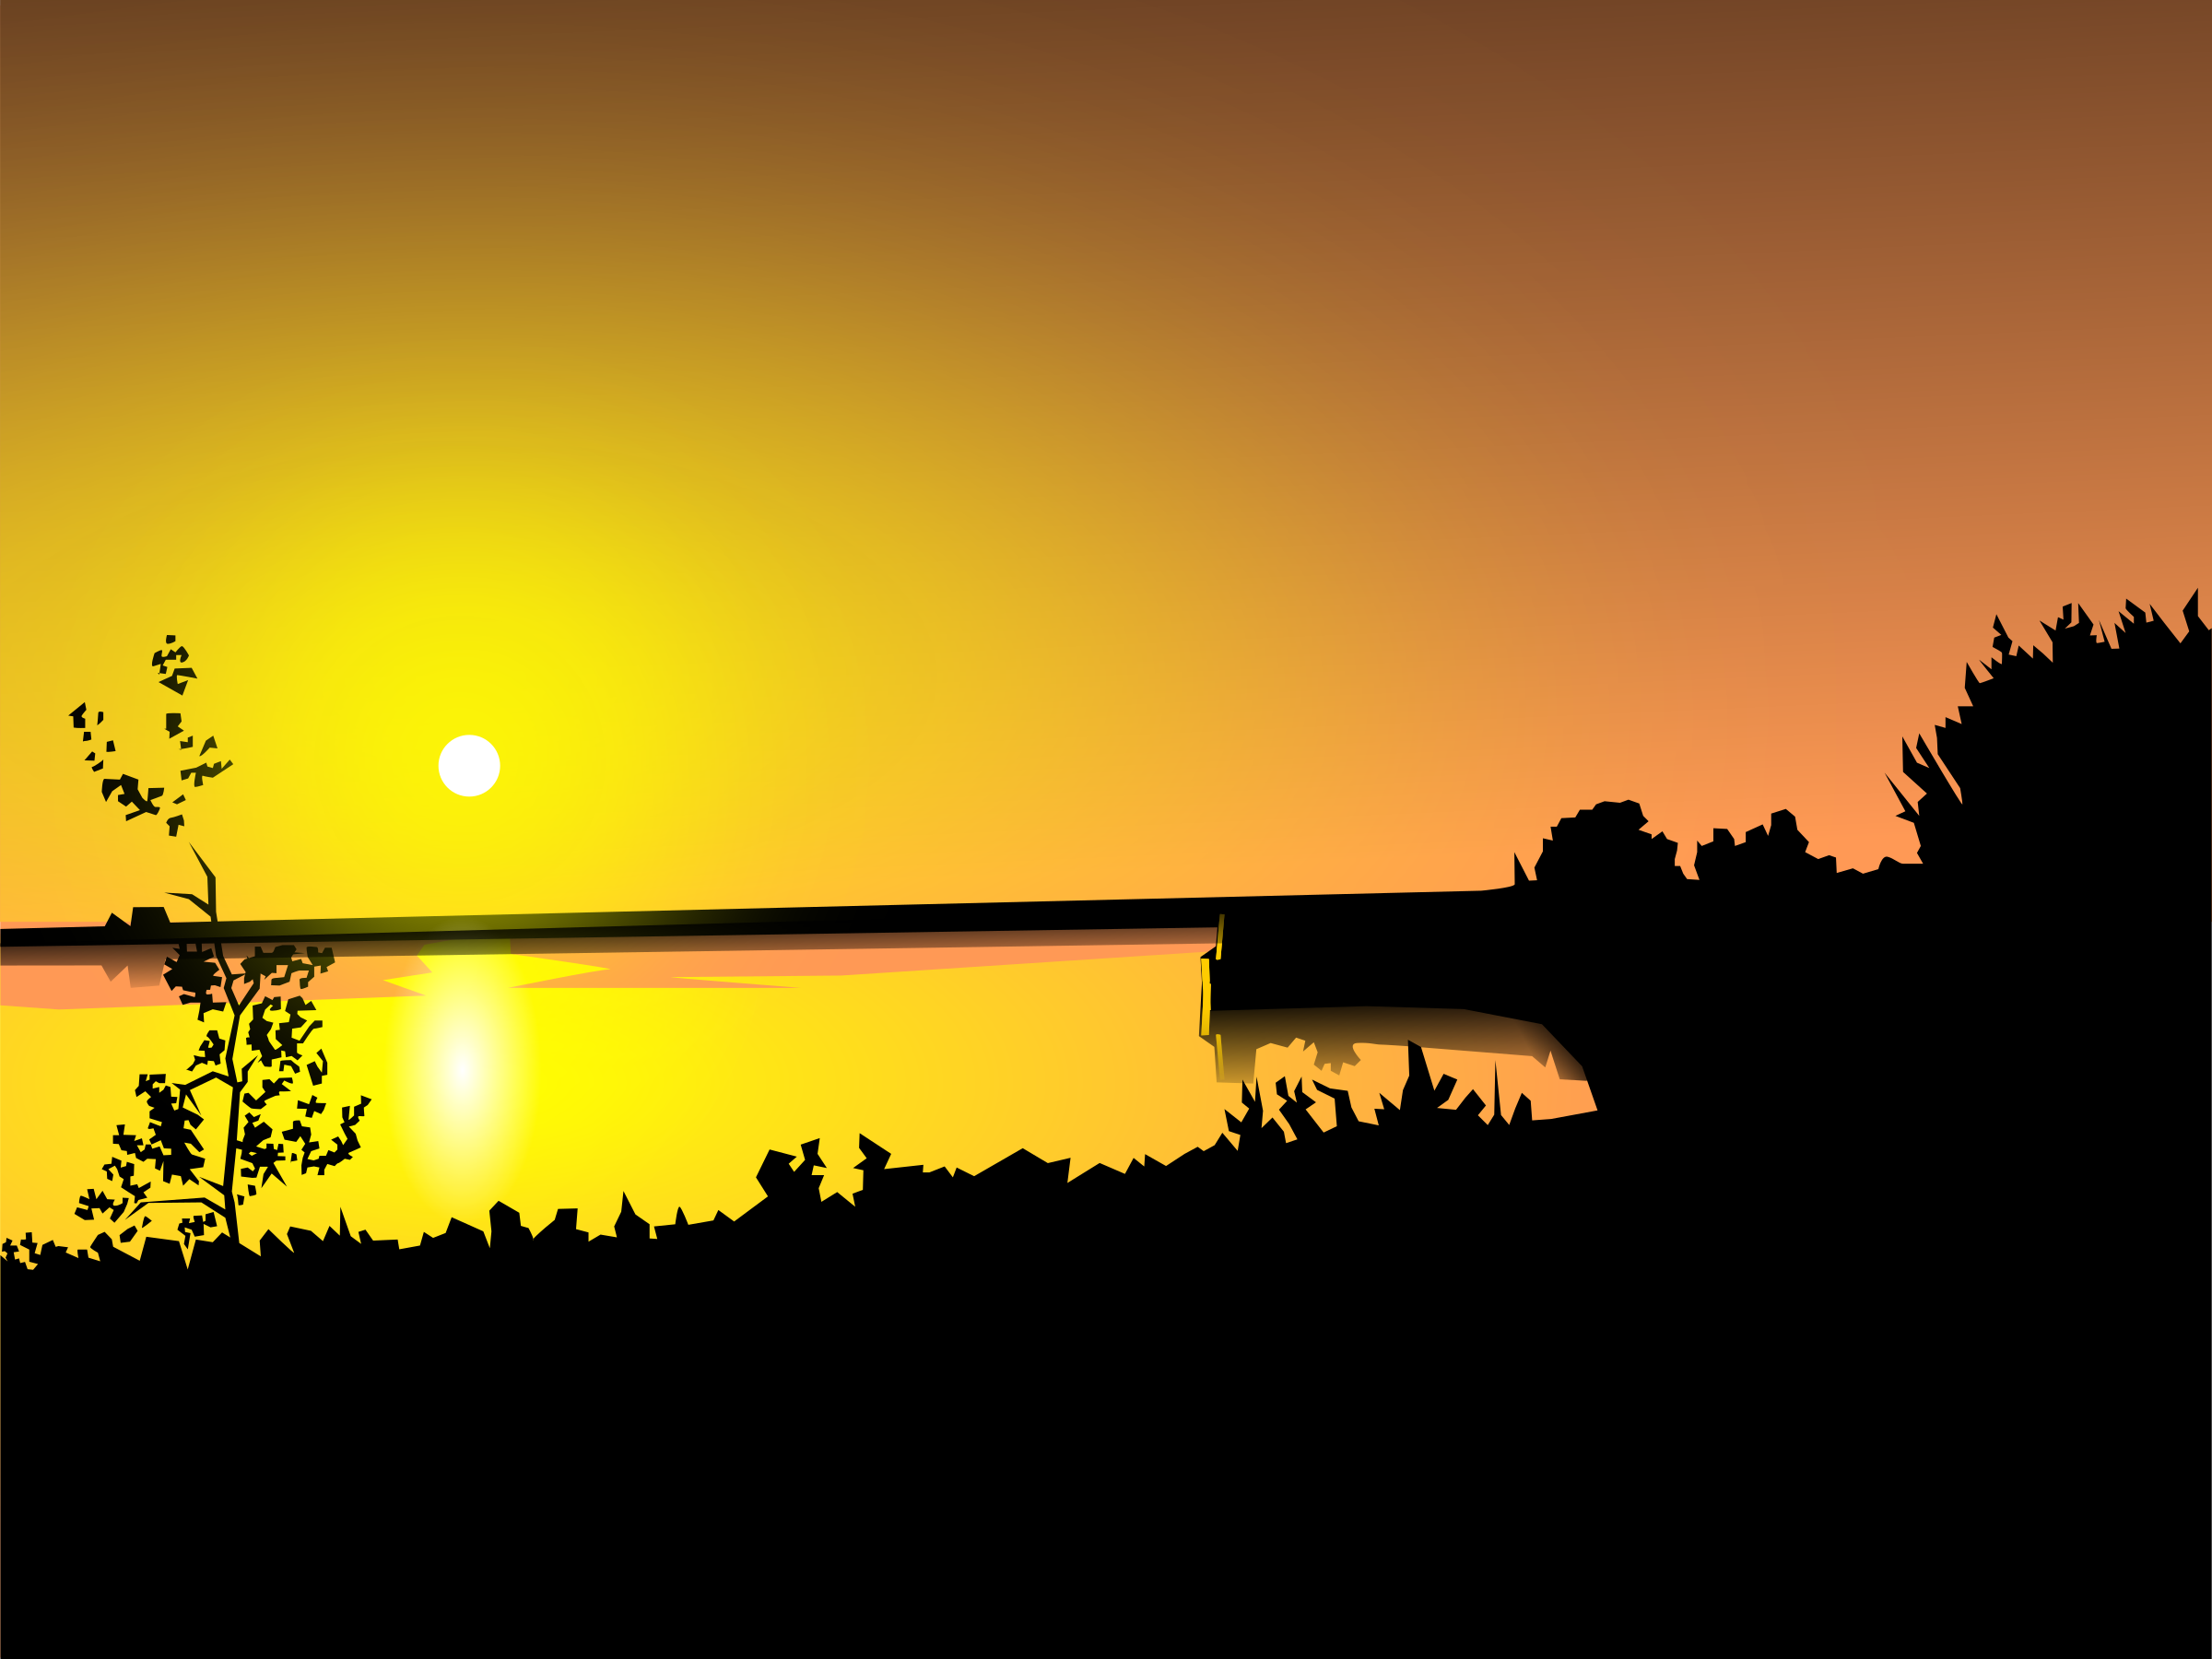 Sunset clipart #3, Download drawings